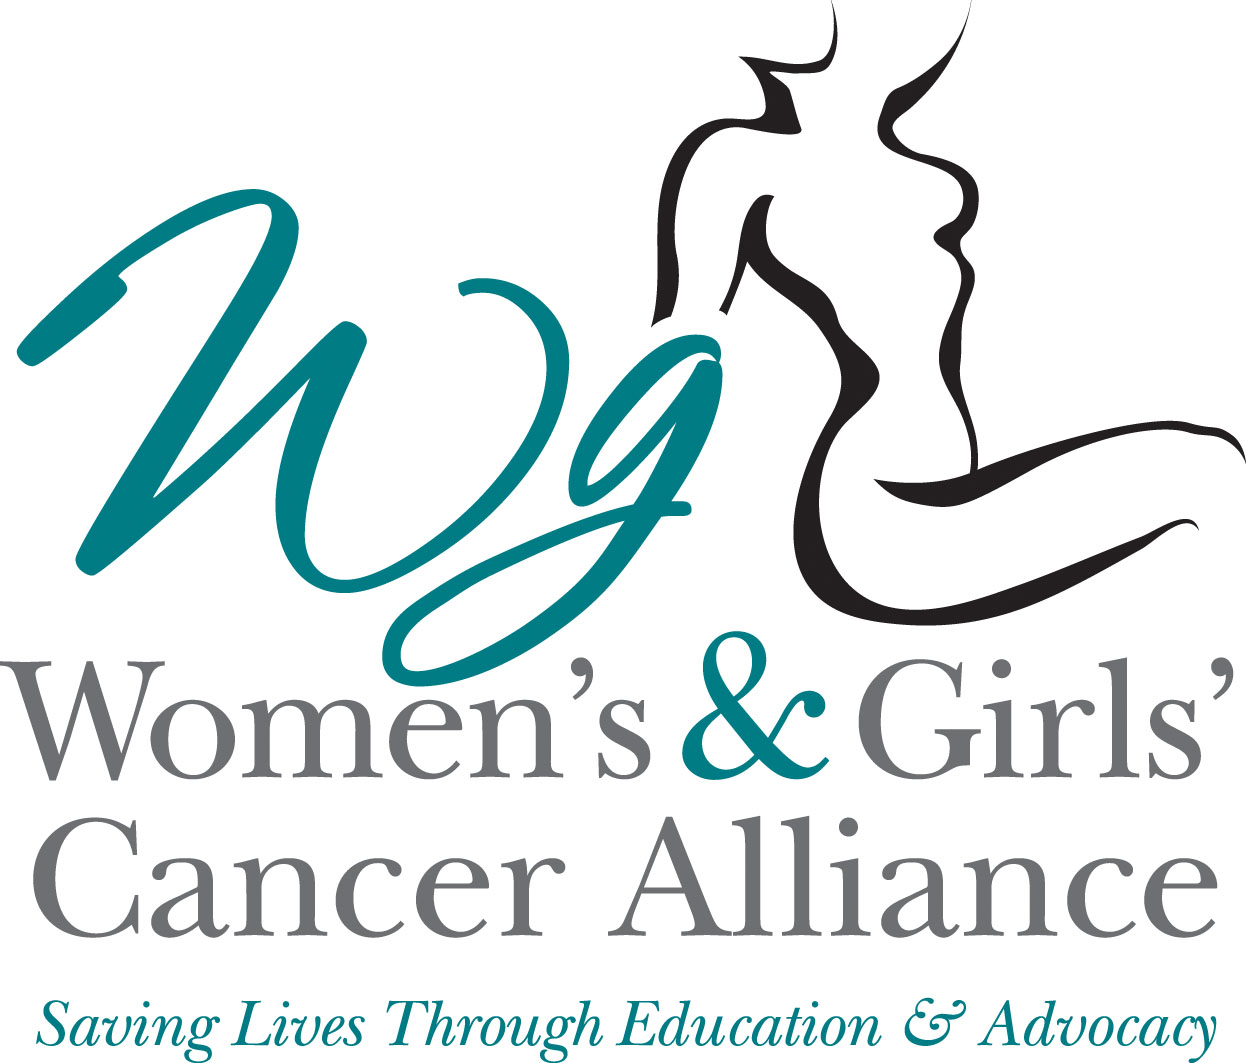 Women's & Girls' Cancer Alliance